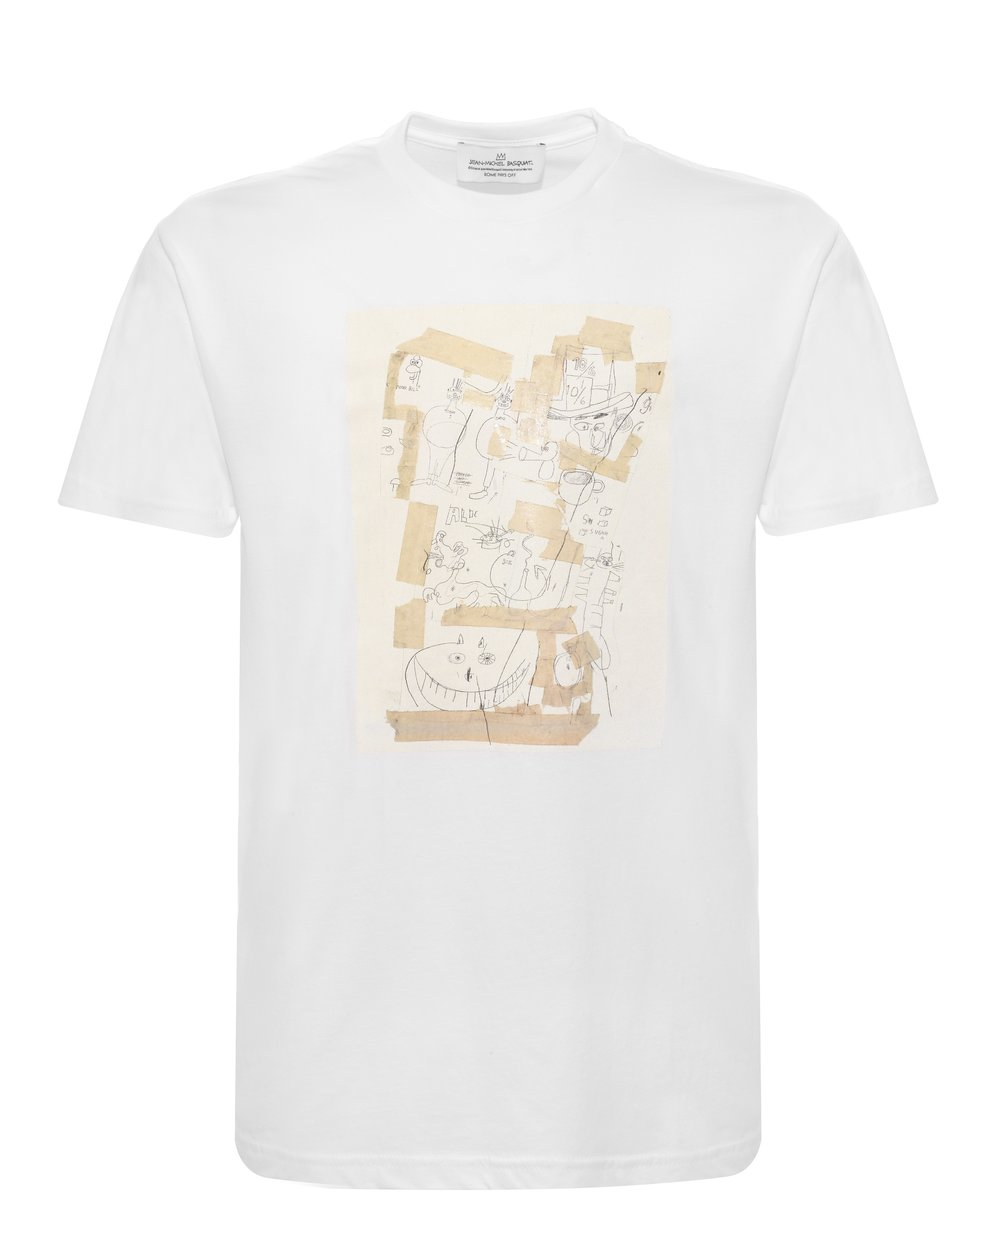 BASQUAIT - ALICE TEE - WHITE - £90 - BROWNS FASHION.jpg